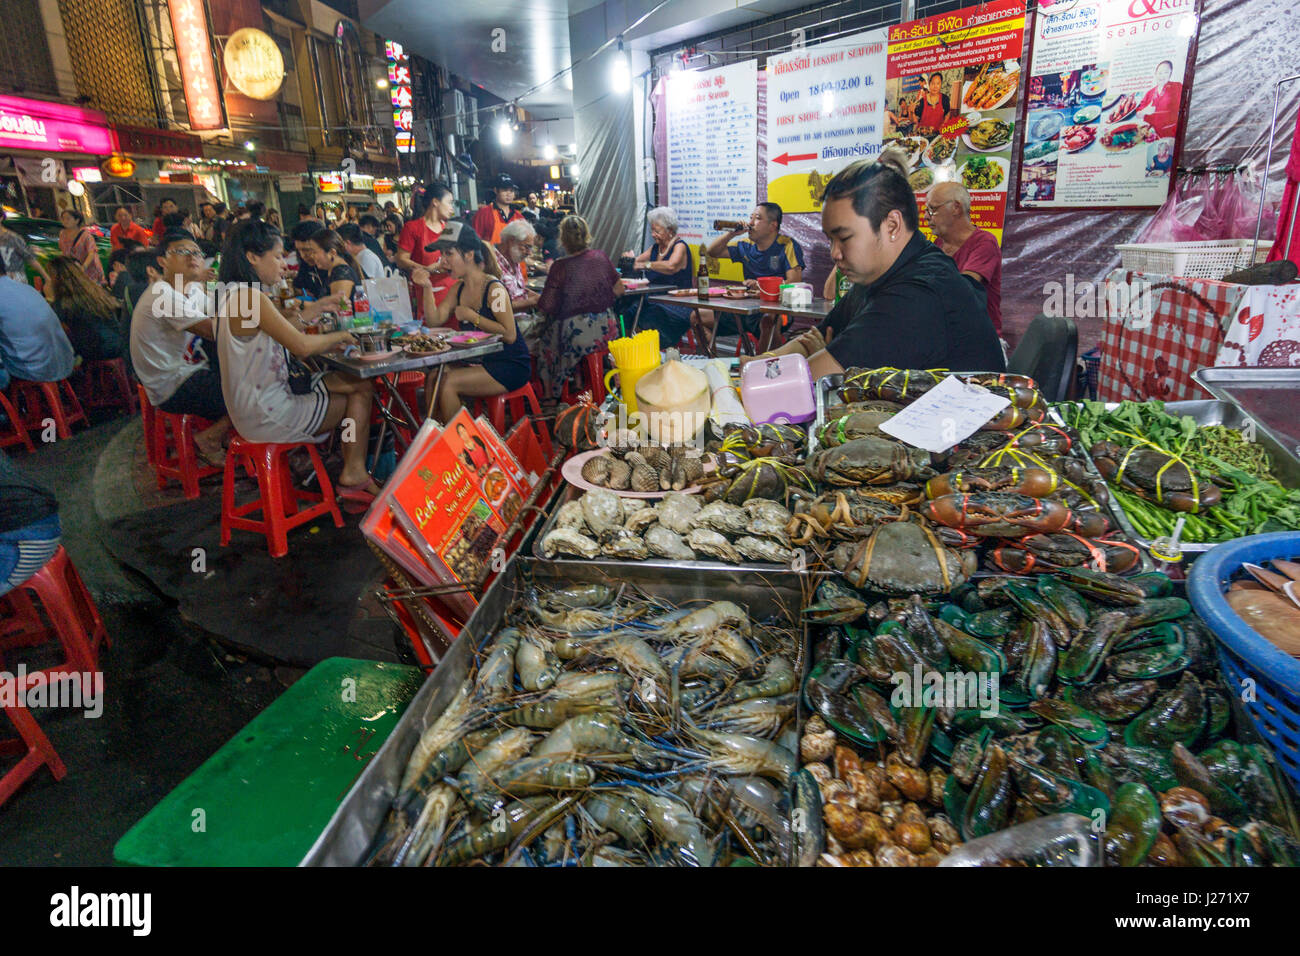 Chinatown, night market, Sea Food Restaurant, street food, Bangkok, Thailand - Stock Image